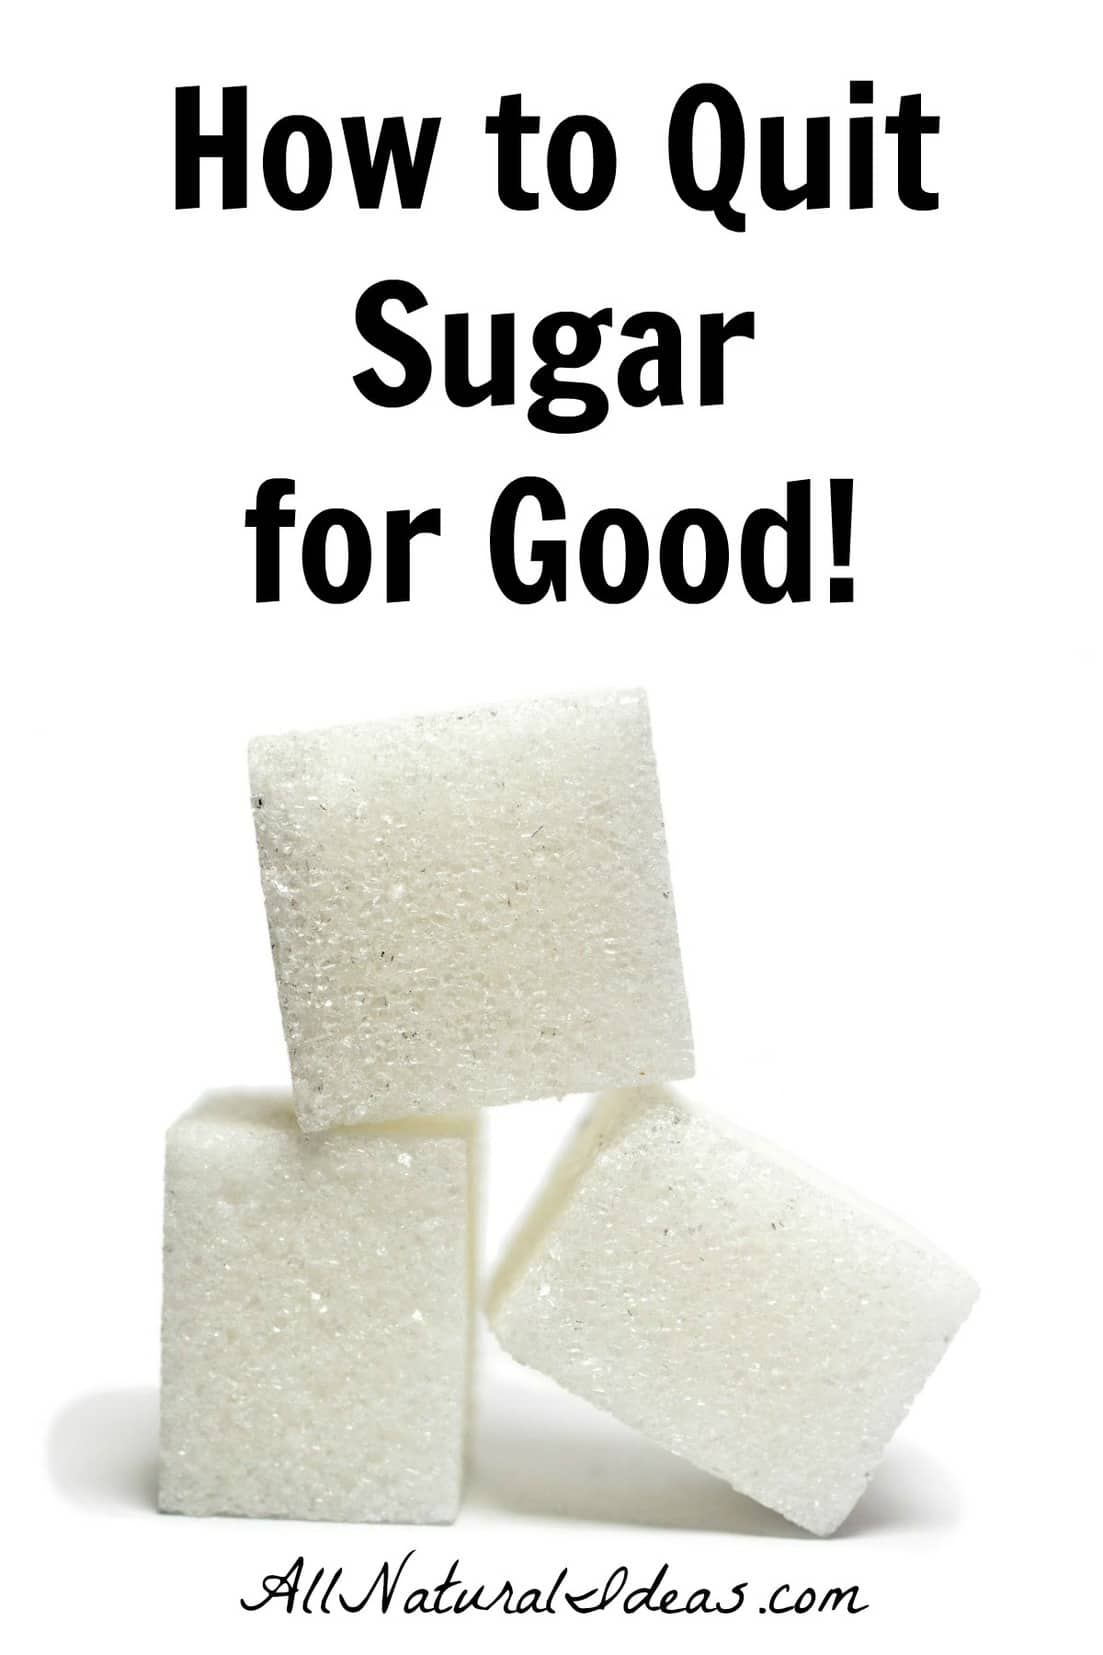 Many of the chronic health problems today originate from sugar. Learn how to quit sugar addiction and detox to lower your risk of chronic diseases.